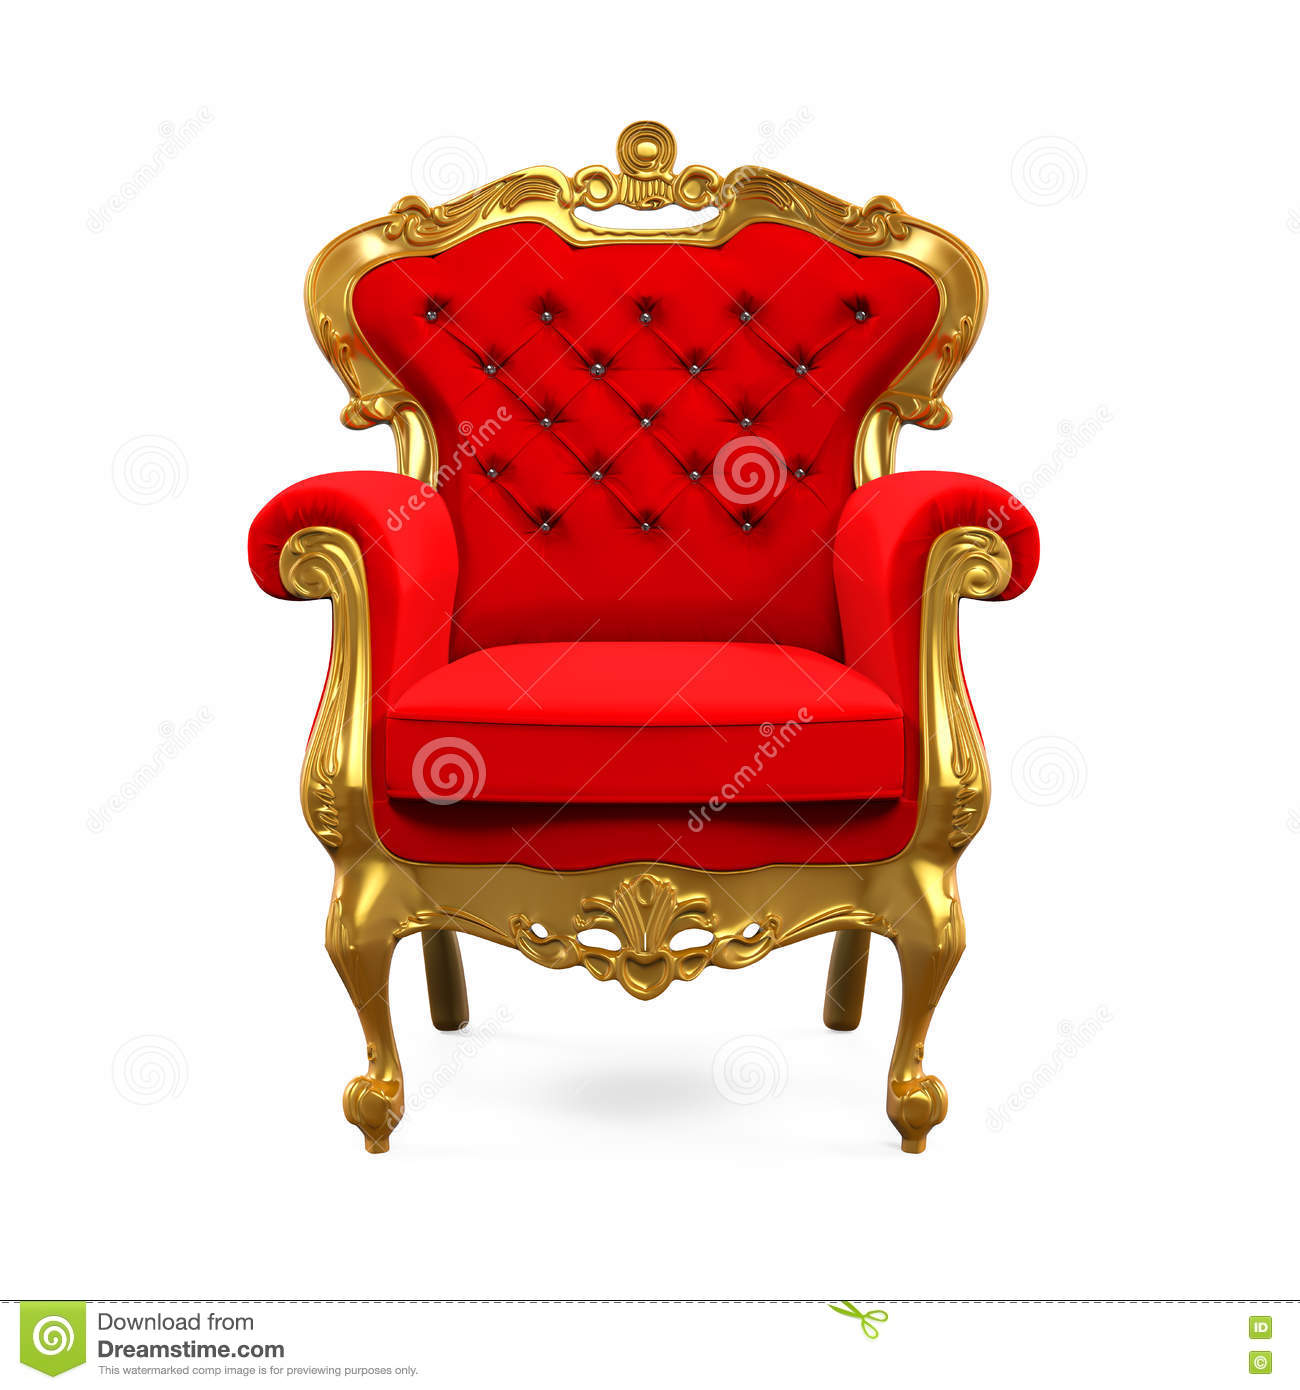 King chair with king - King Throne Chair Stock Photos